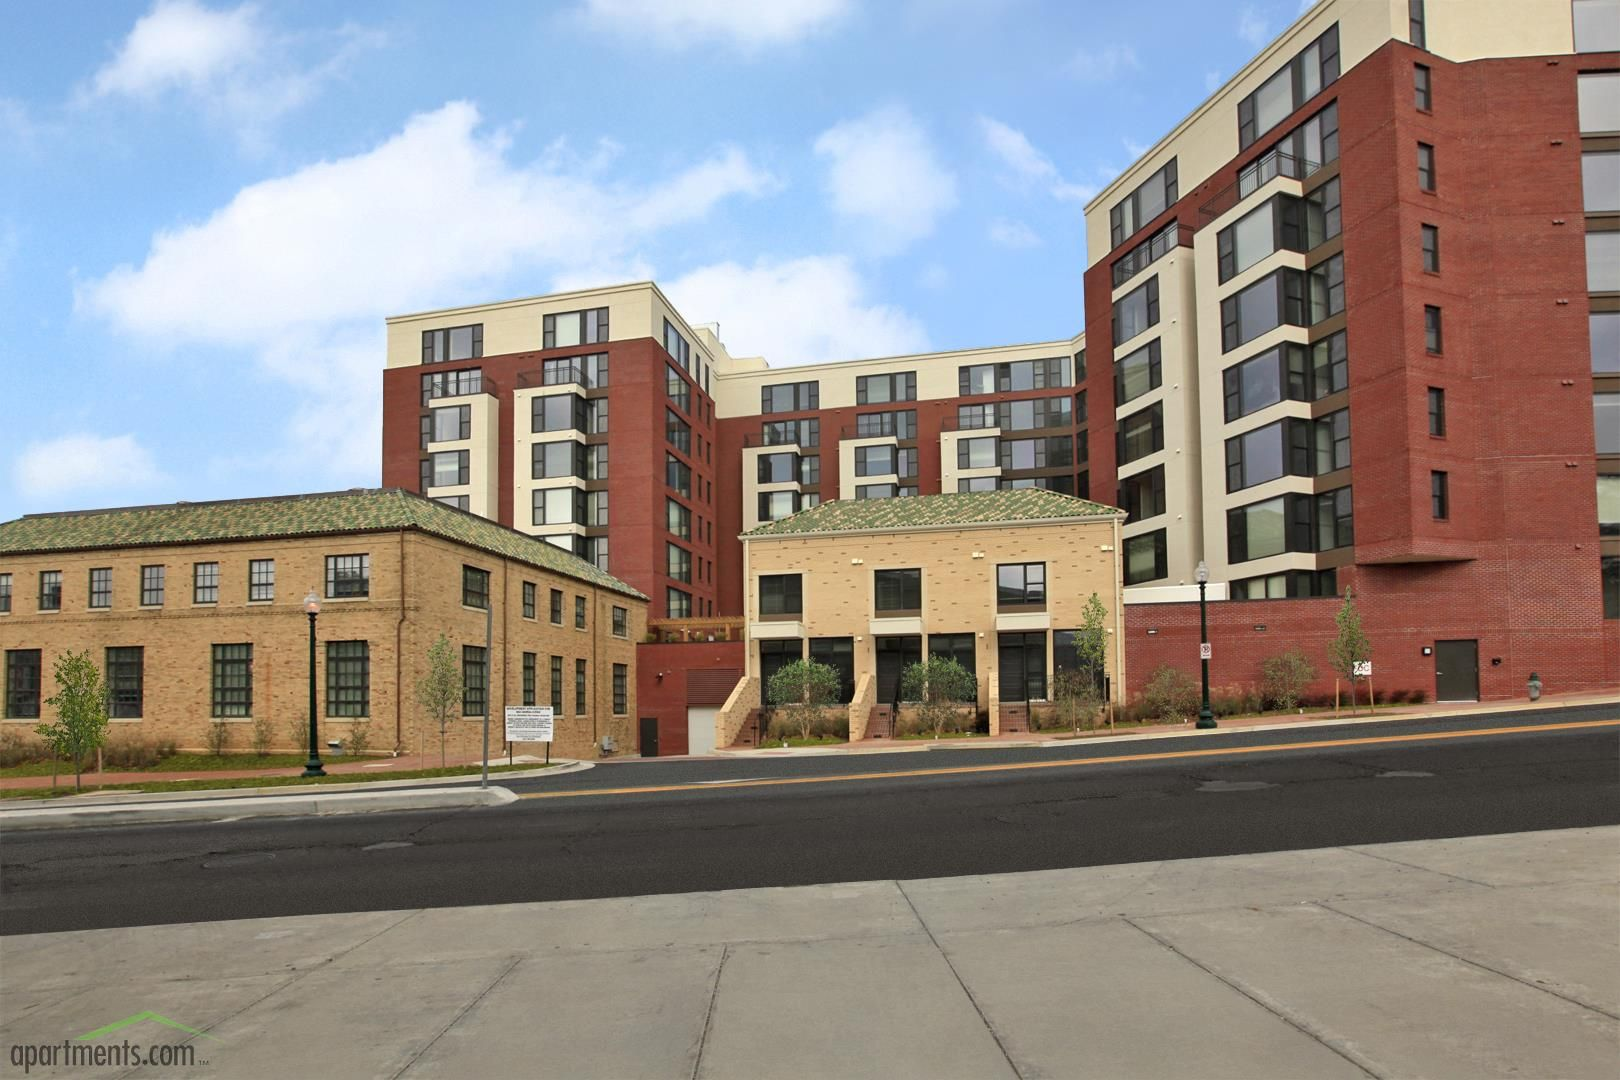 8021 Georgia Avenue A Recently Completed 210 Apartment Project Apartment Projects House Styles Downtown Silver Spring